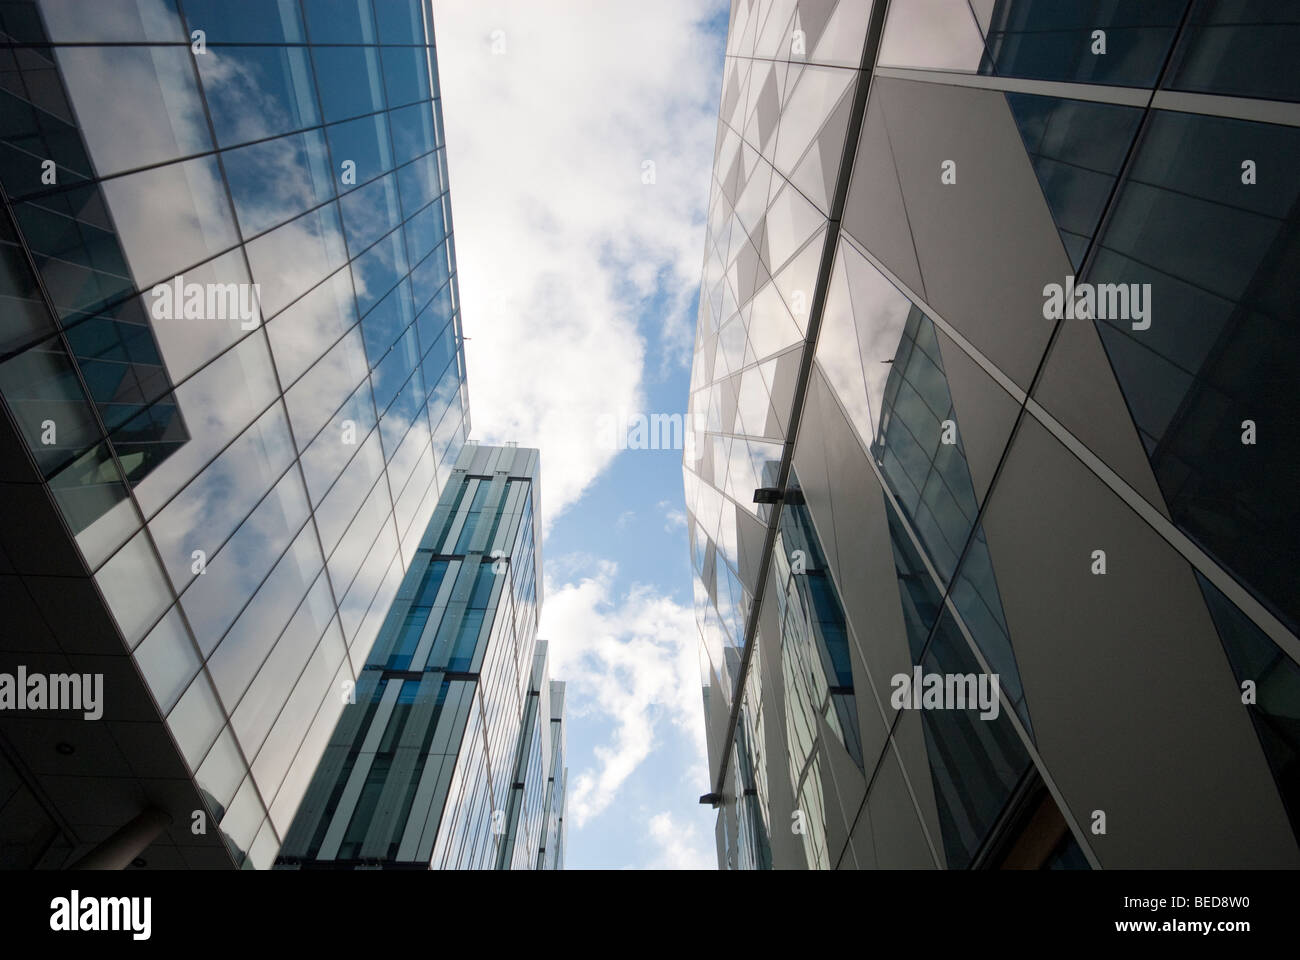 Manchester UK: Looking up at the finance district buildings at the heart of Manchester City Centre - Stock Image